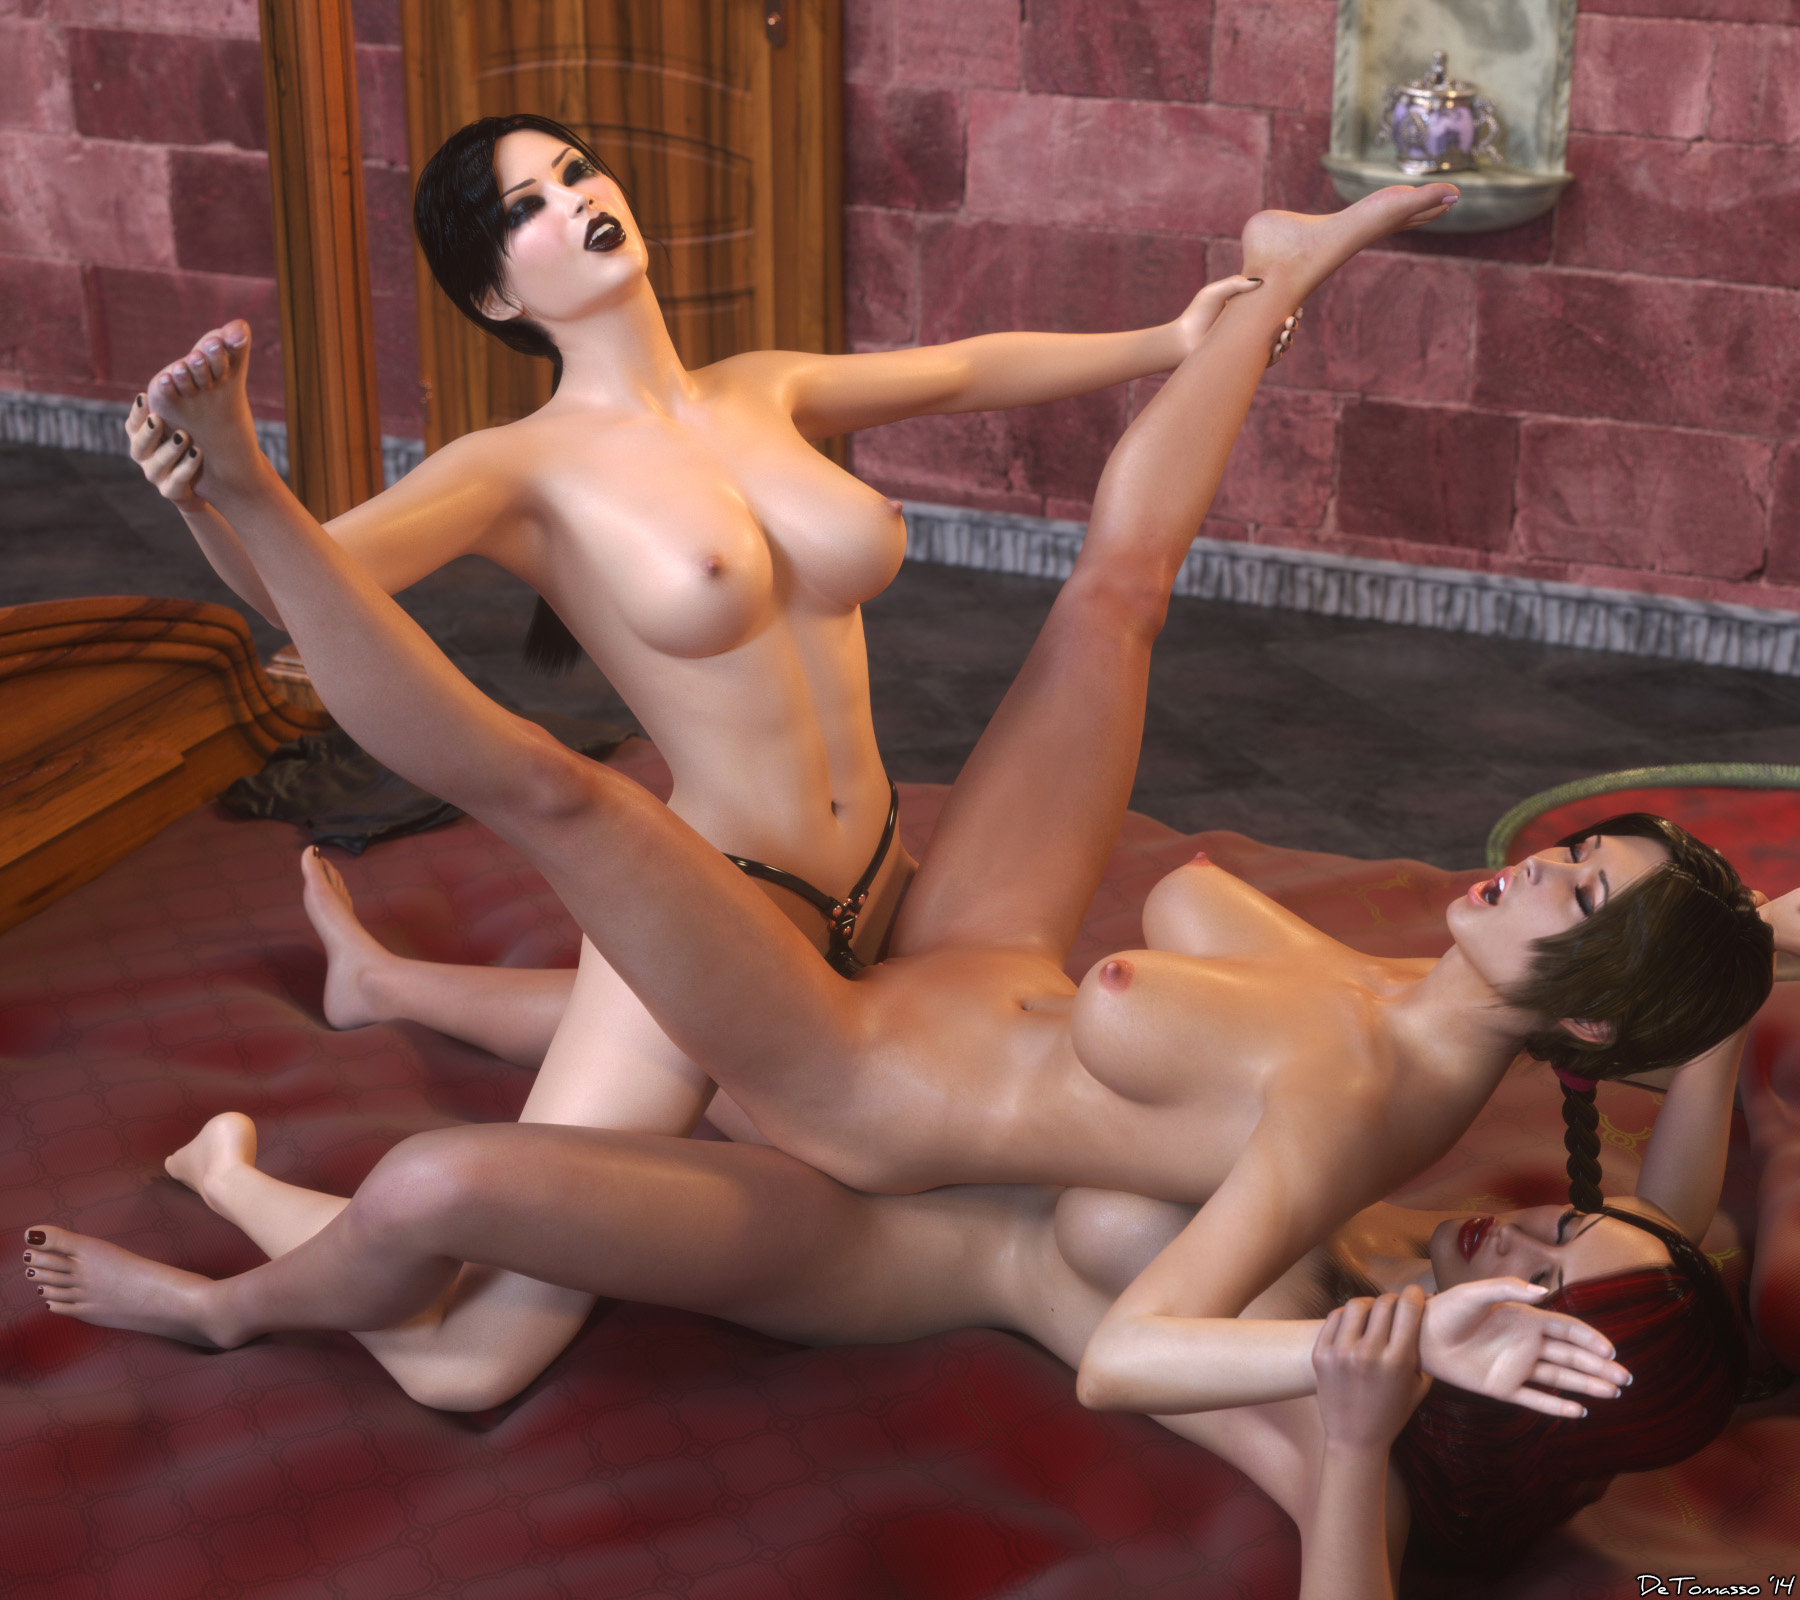 Popular photos results: lara croft 3d hentai nackt vids